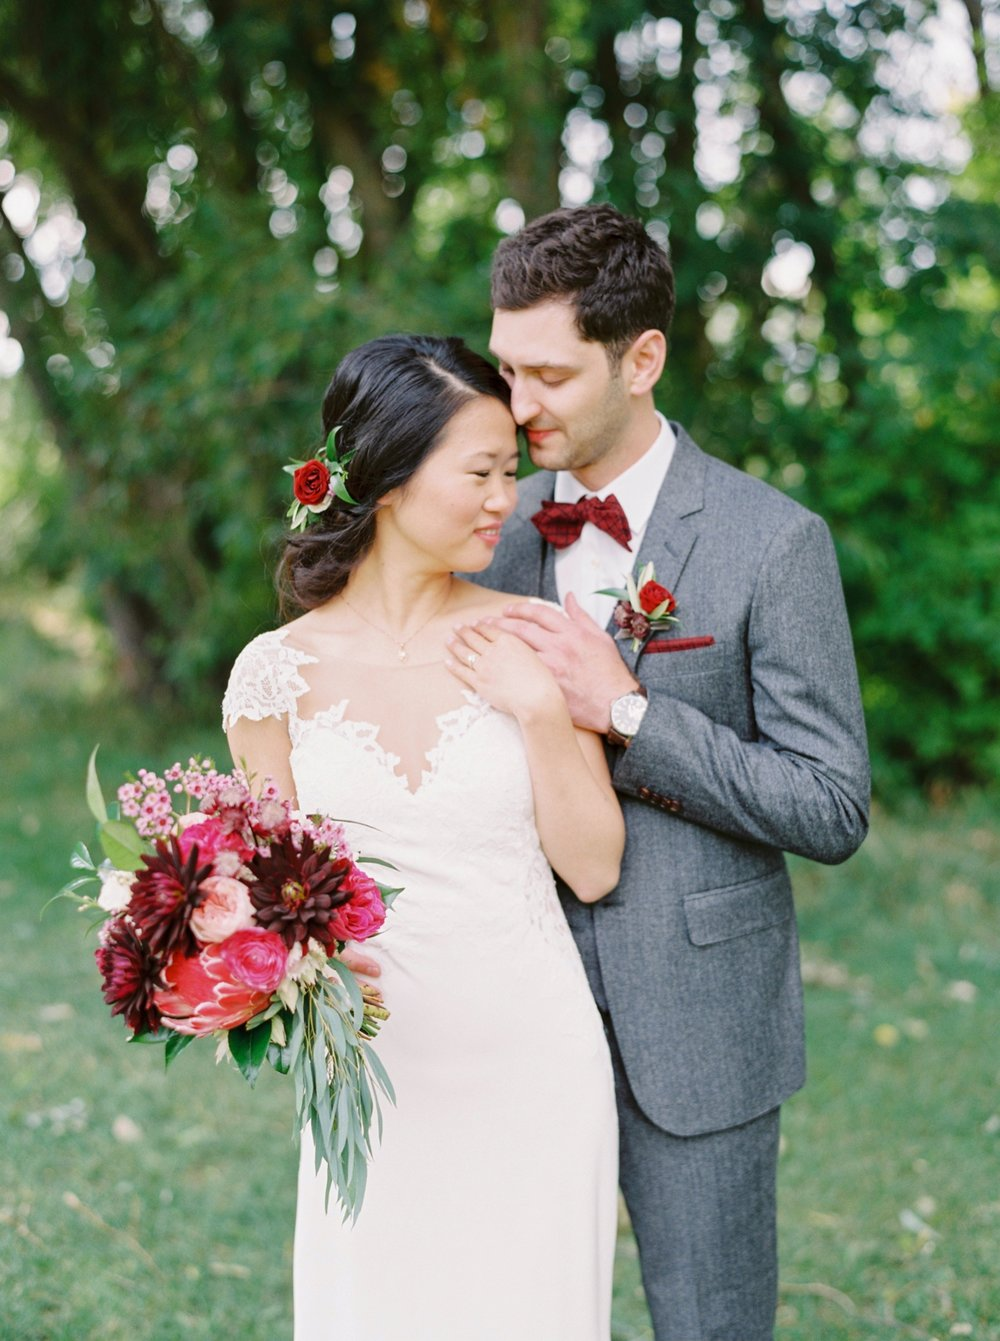 Calgary wedding photographer | fine art film photography | Calgary Wedding Photographers | Calgary couples photographer | Justine Milton Photography | bouquet | couples portrait